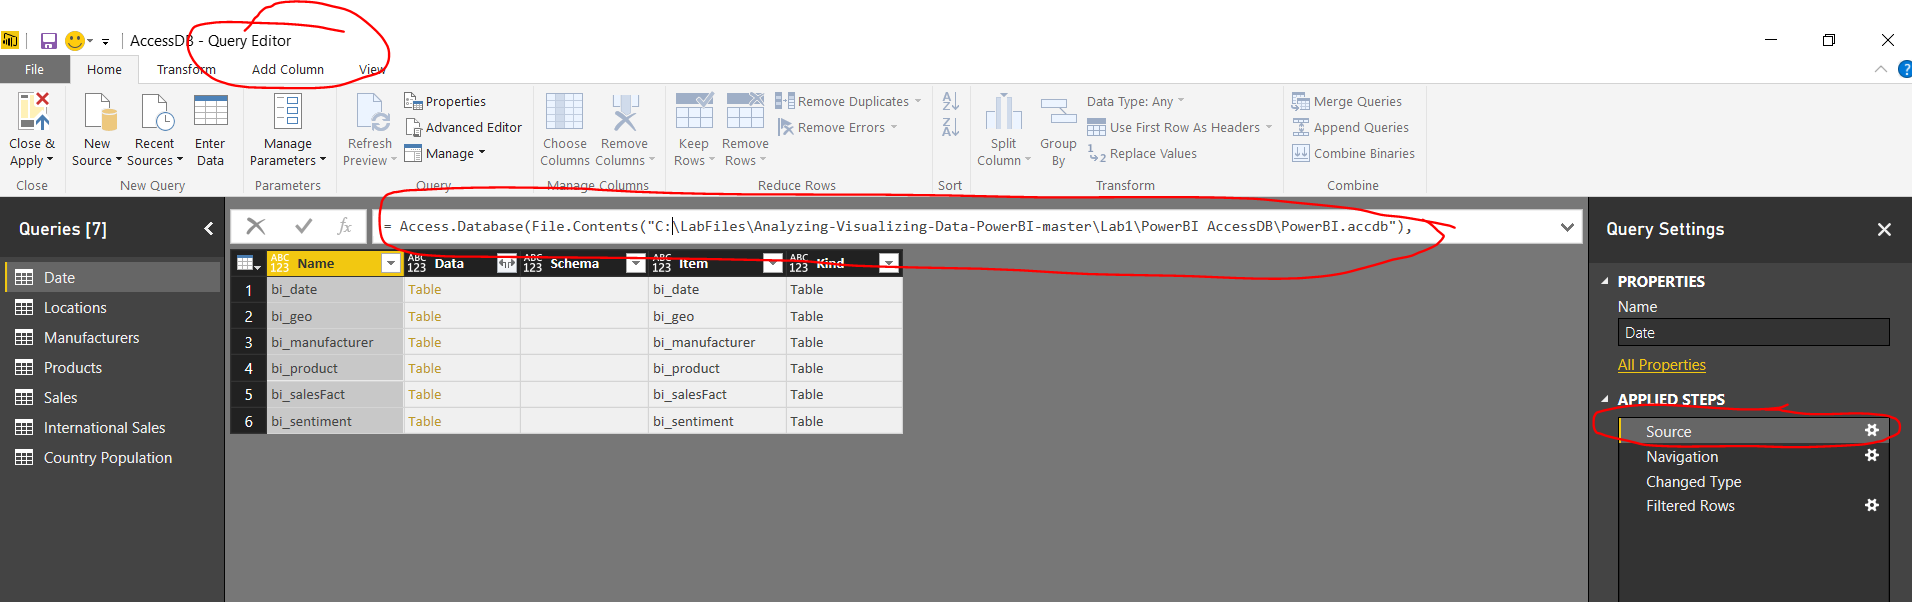 Solved: Cannot edit queries from Lab 2 - Microsoft Power BI